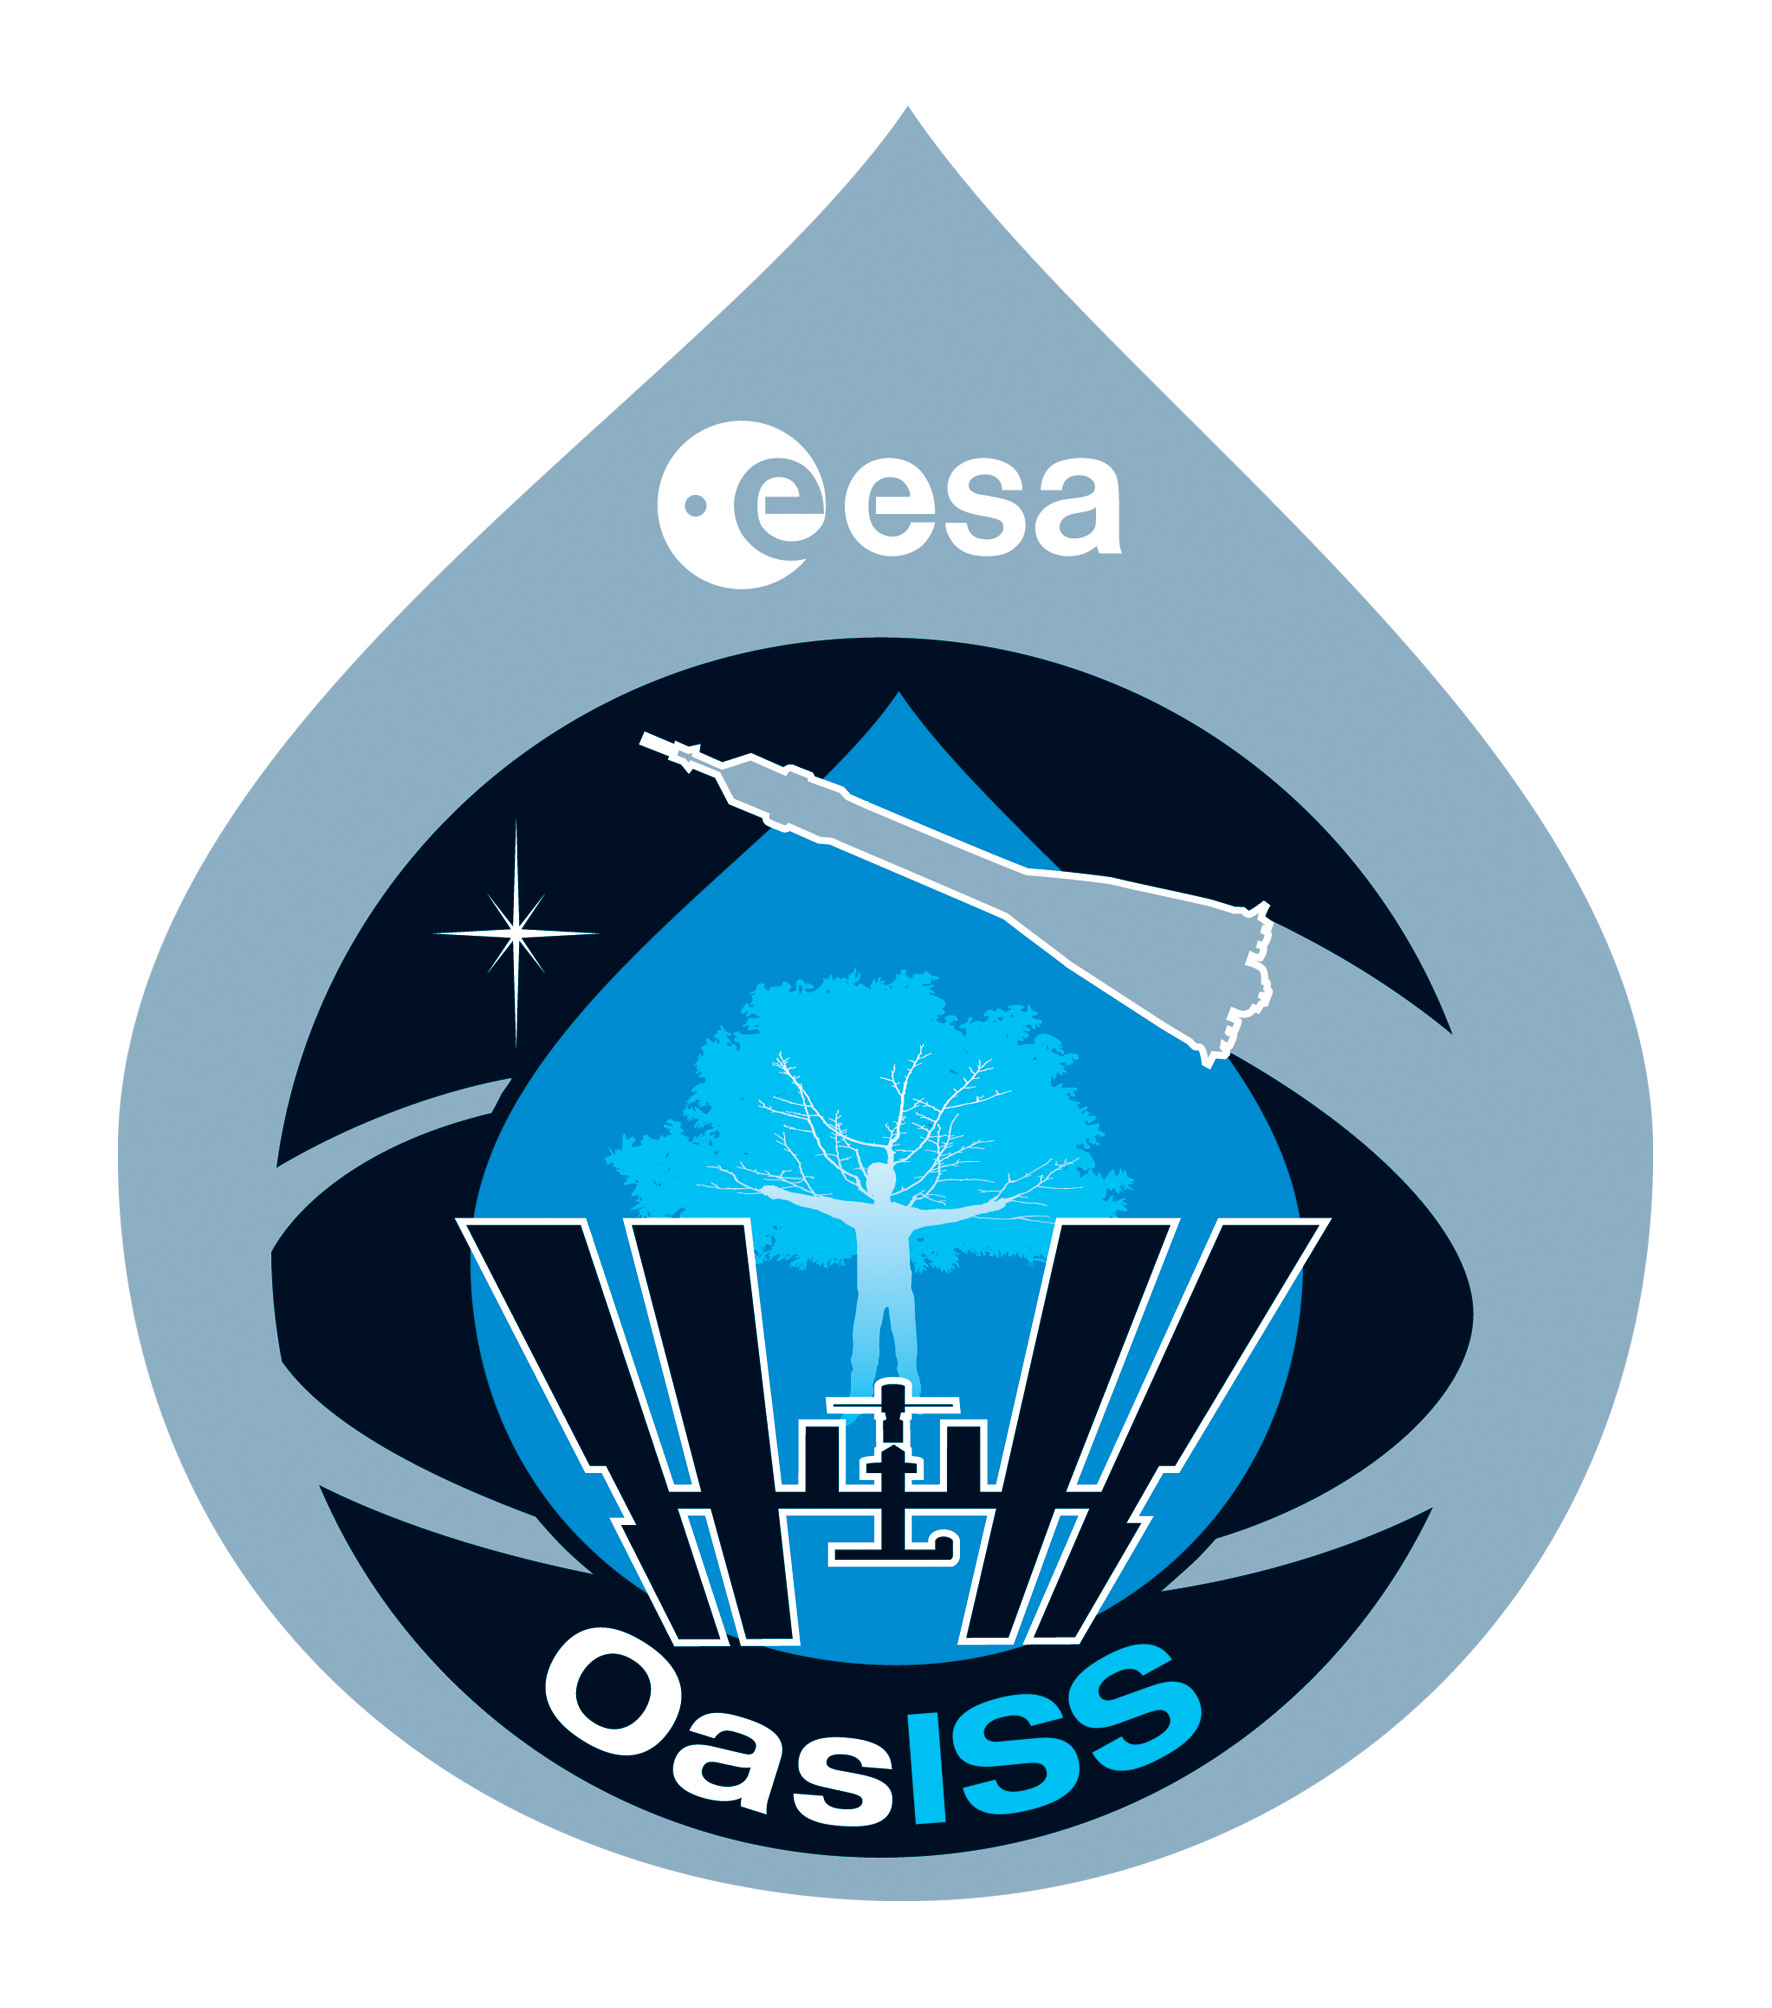 esa bubbles logo - photo #42